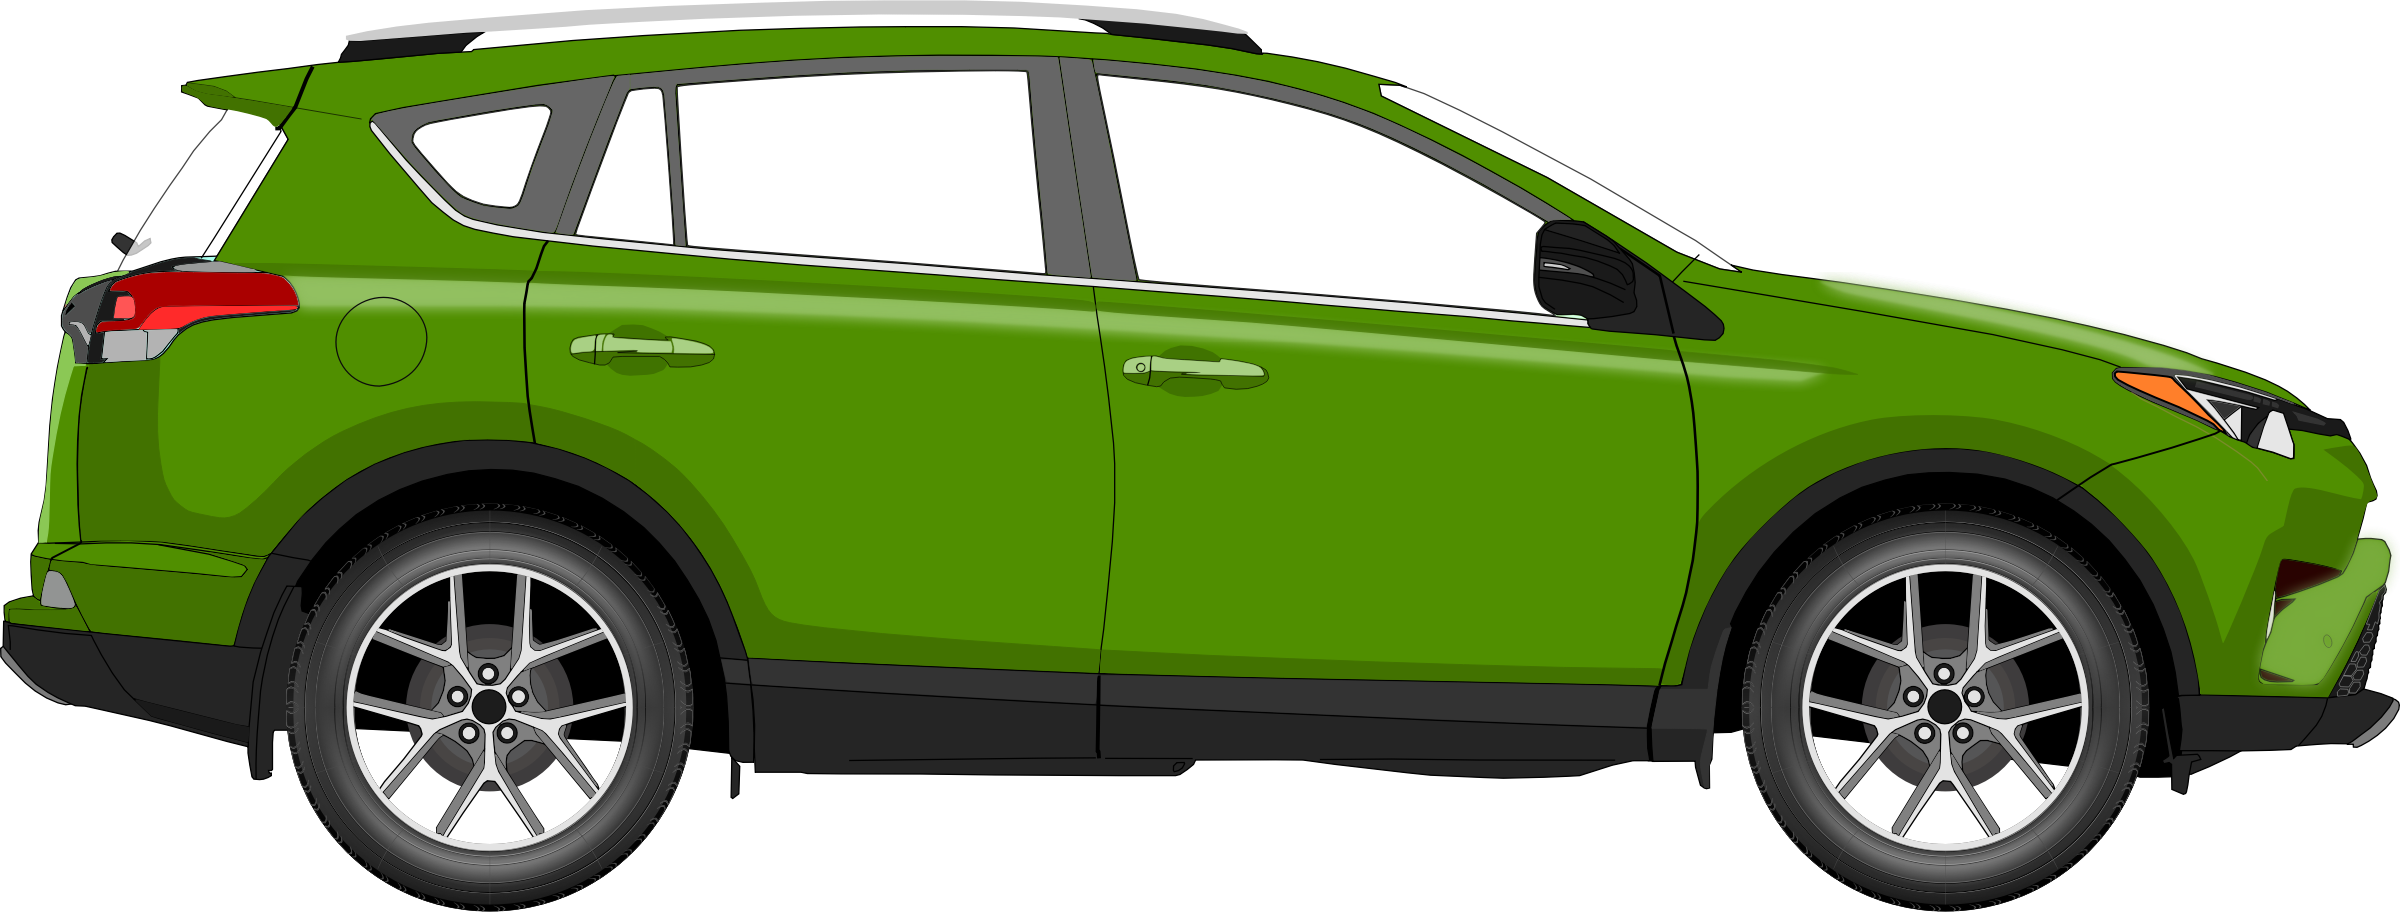 Car 14 (green) by Firkin